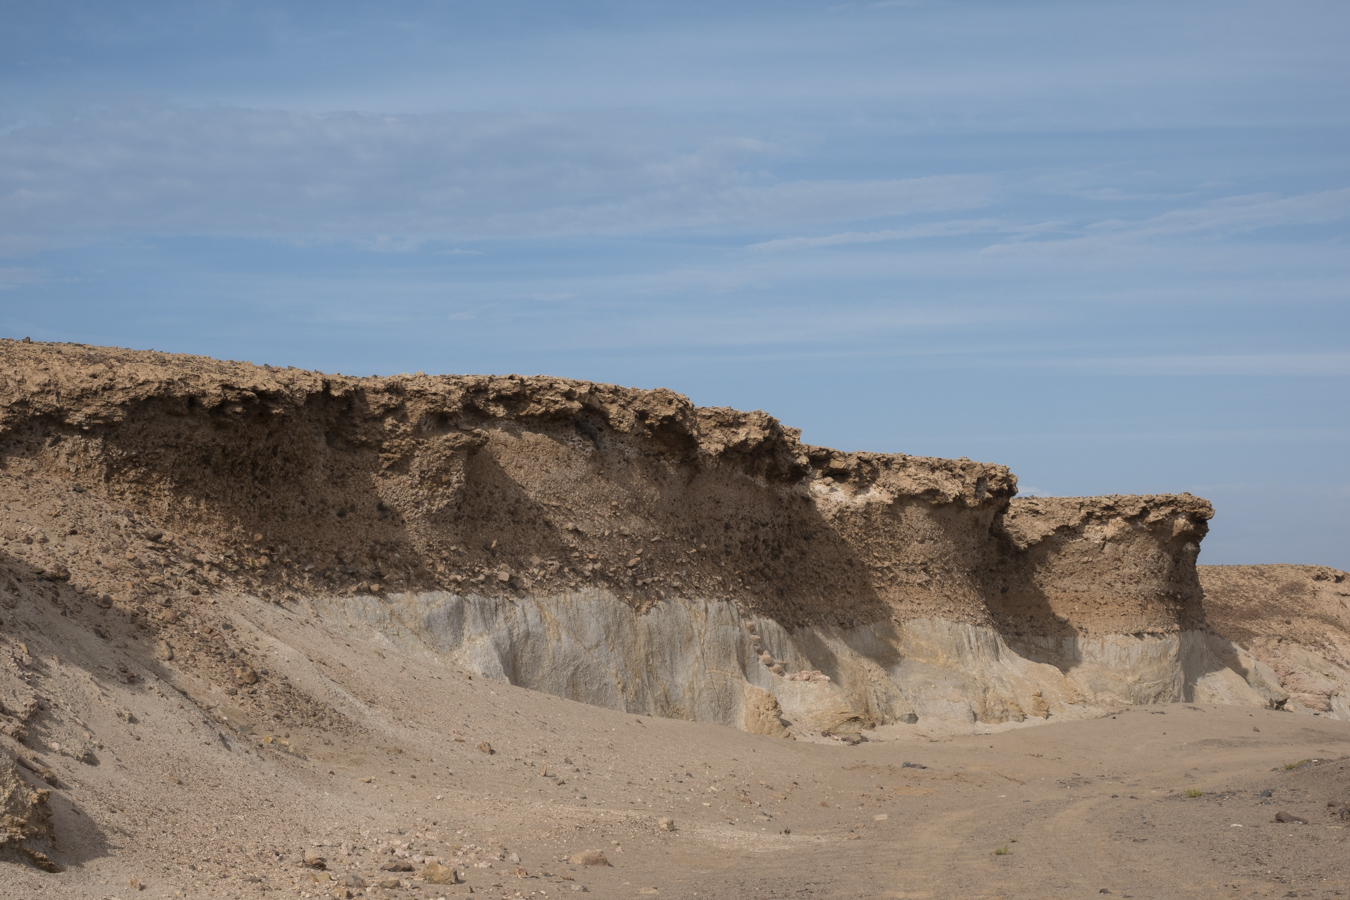 The dry Messum riverbed.     When it rains, water will come from the Messum Crater into the riverbed. The crater was named after Captain W Messum, who was an explorer of the coastal regions of Southern Africa from 1846-1848.